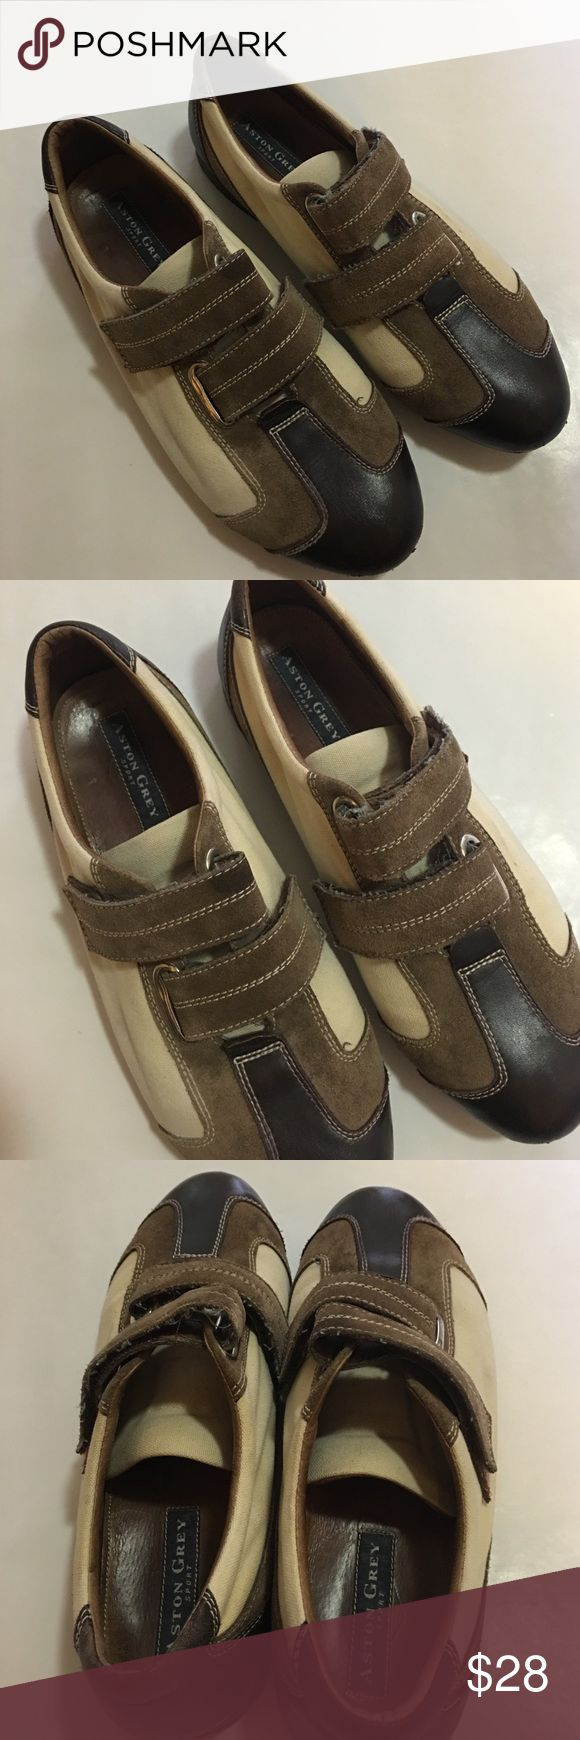 ⚡️Sale⚡️Aston Grey -Men's Handmade, Leather shoes Aston Grey Sport men's handmade, genuine leather shoes, size 9.5 but fit like a 10-10.5 In great preowned condition with lots of life left in them. Please be sure to check out all of my other men's items to bundle and save! Same day or next business day shipping is guaranteed. Reasonable offers will be considered! Aston Grey Shoes